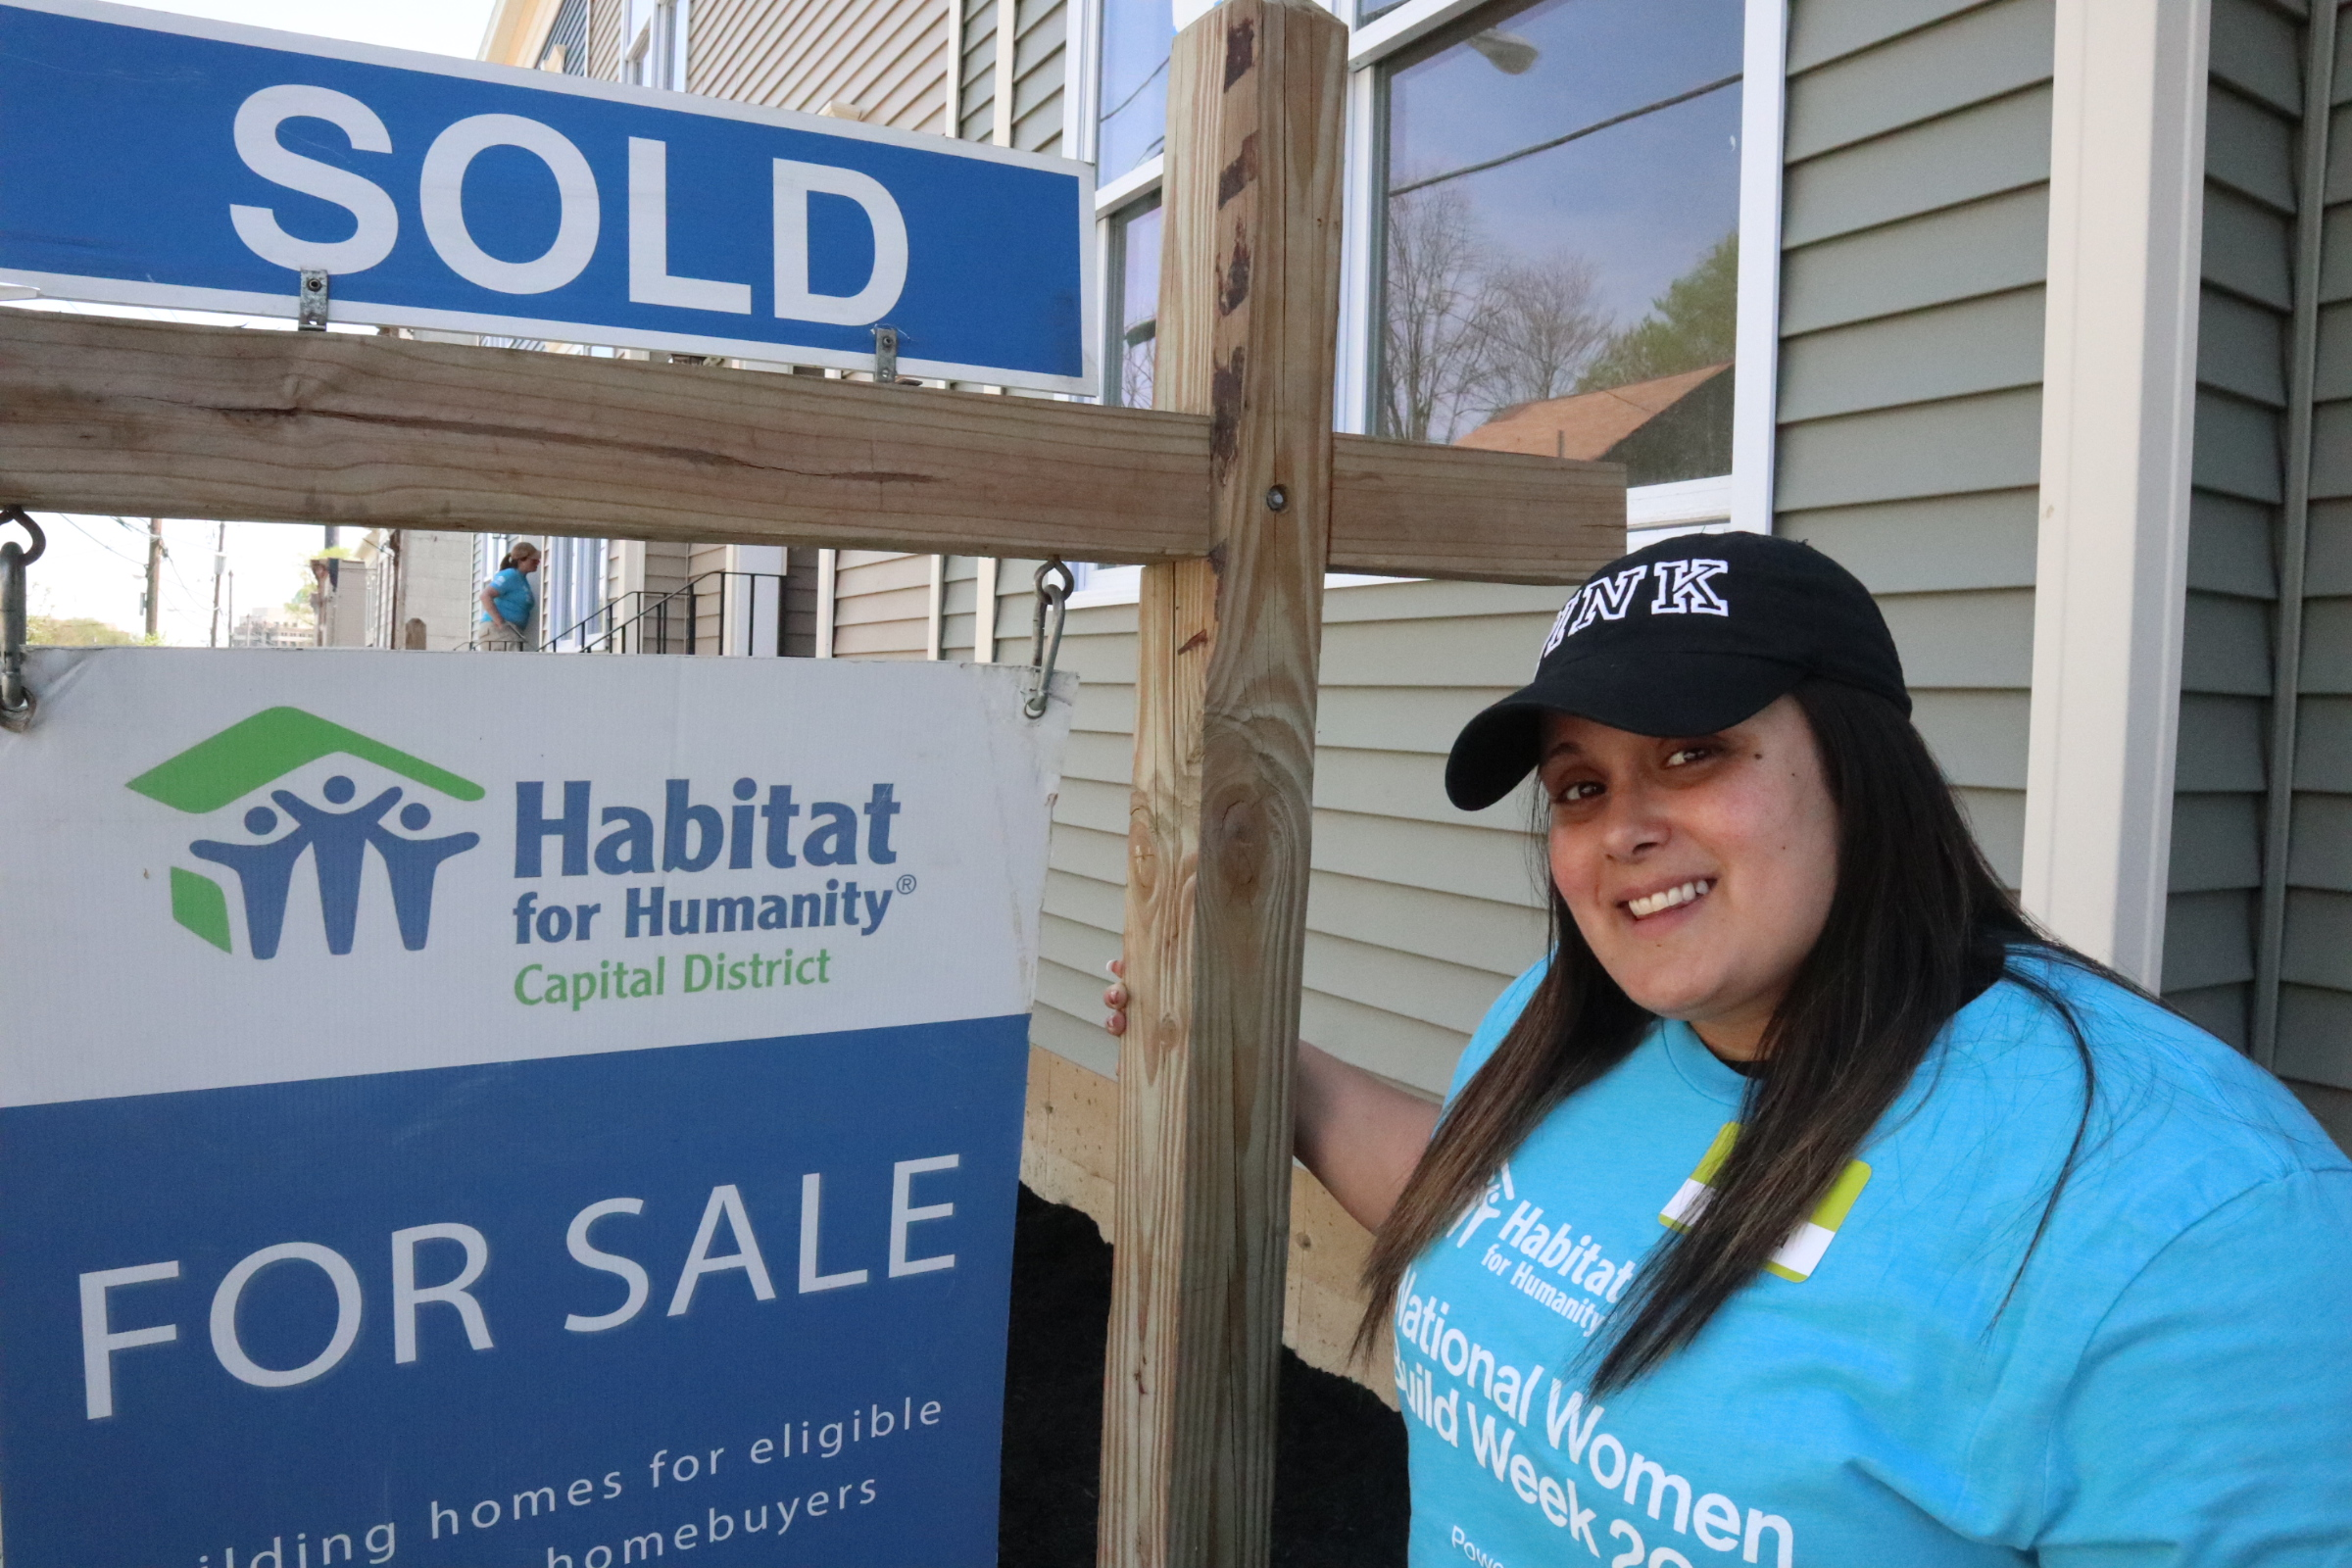 What we do - Habitat for Humanity partners with people to help them build a place they can call home. To us and millions of people around the world, there is no better expression of love than to help our neighbors purchase their own home.learn more about joining us and supporting our work & mission